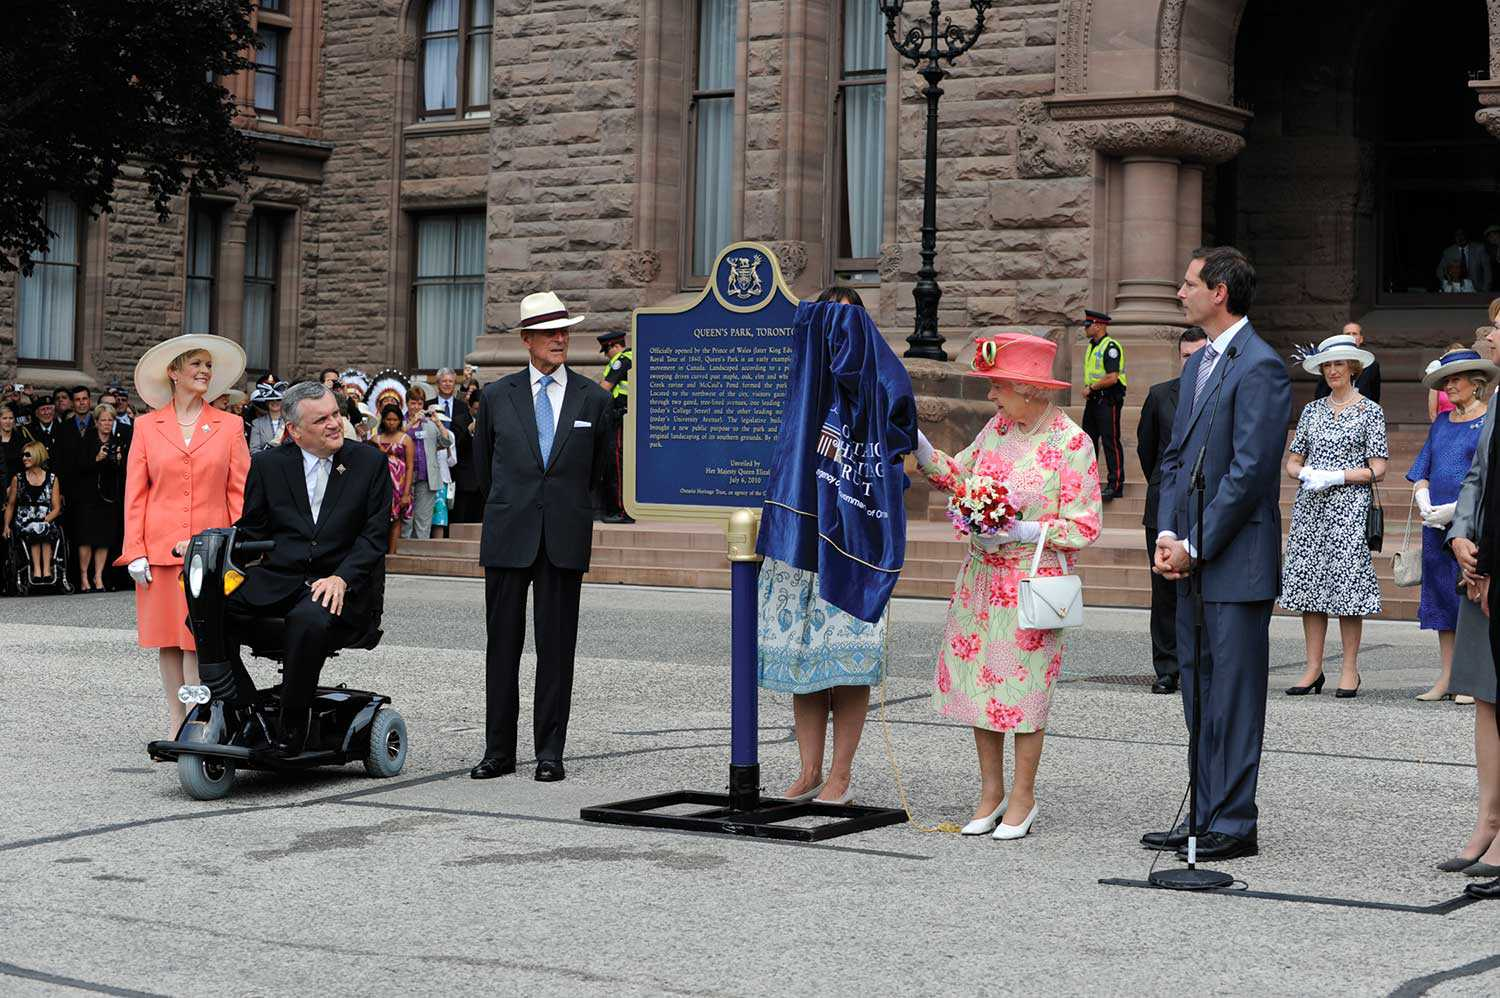 On July 6, 2010, Queen Elizabeth II unveiled a provincial plaque to commemorate the 150th anniversary of Queen's Park (Photo: Rick Chard)